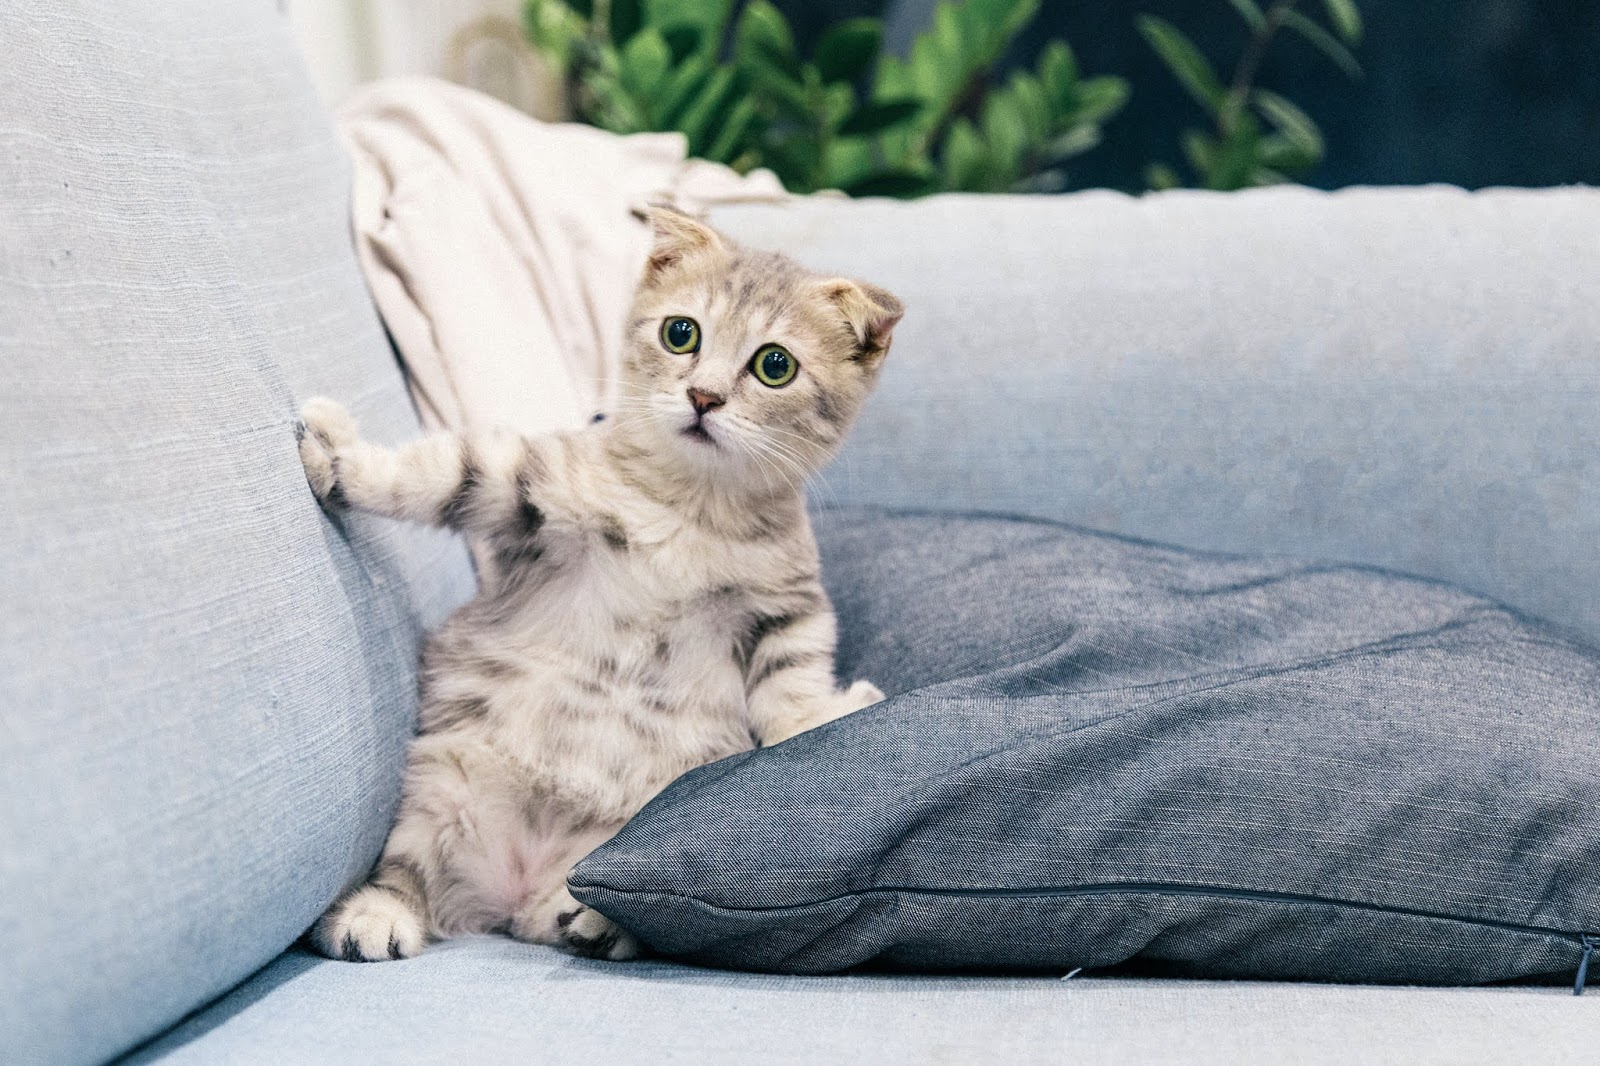 photo-of-gray-and-white-tabby-kitten-sitting-on-sofa,cat images